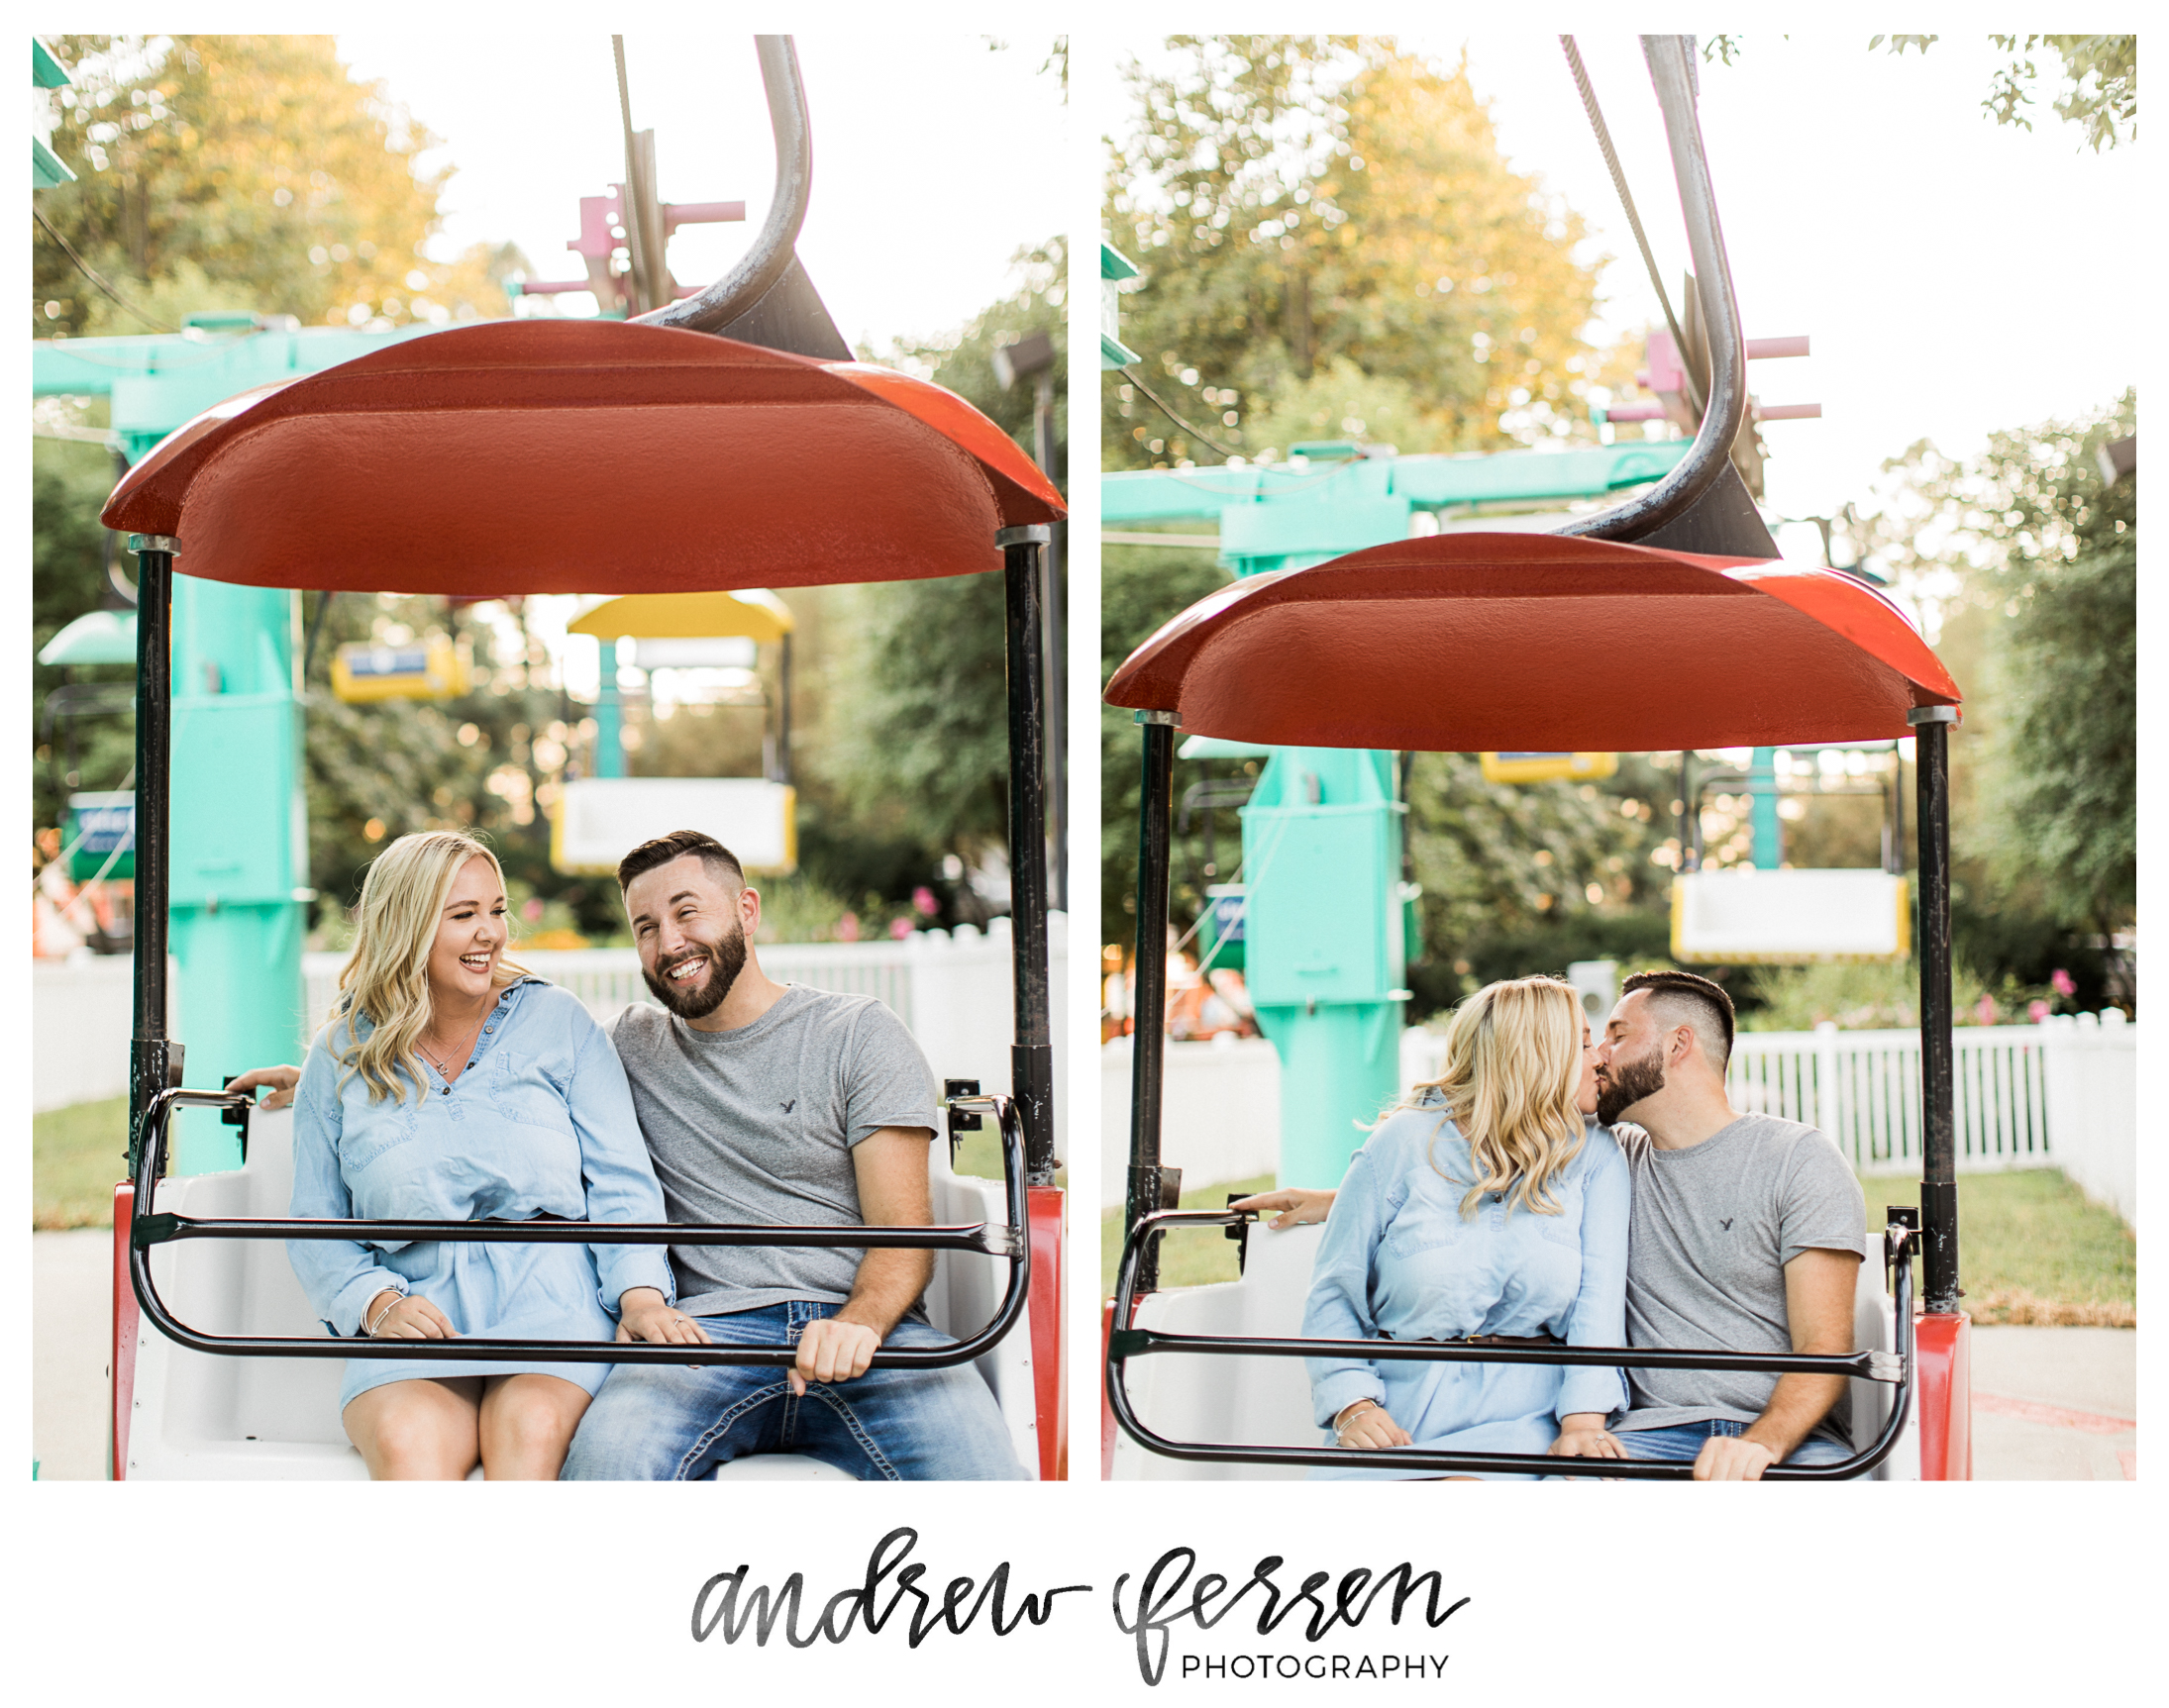 12 Iowa State Fairgrounds Engagement Session Iowa Wedding Photographer Andrew Ferren Photography Pinterest.jpg